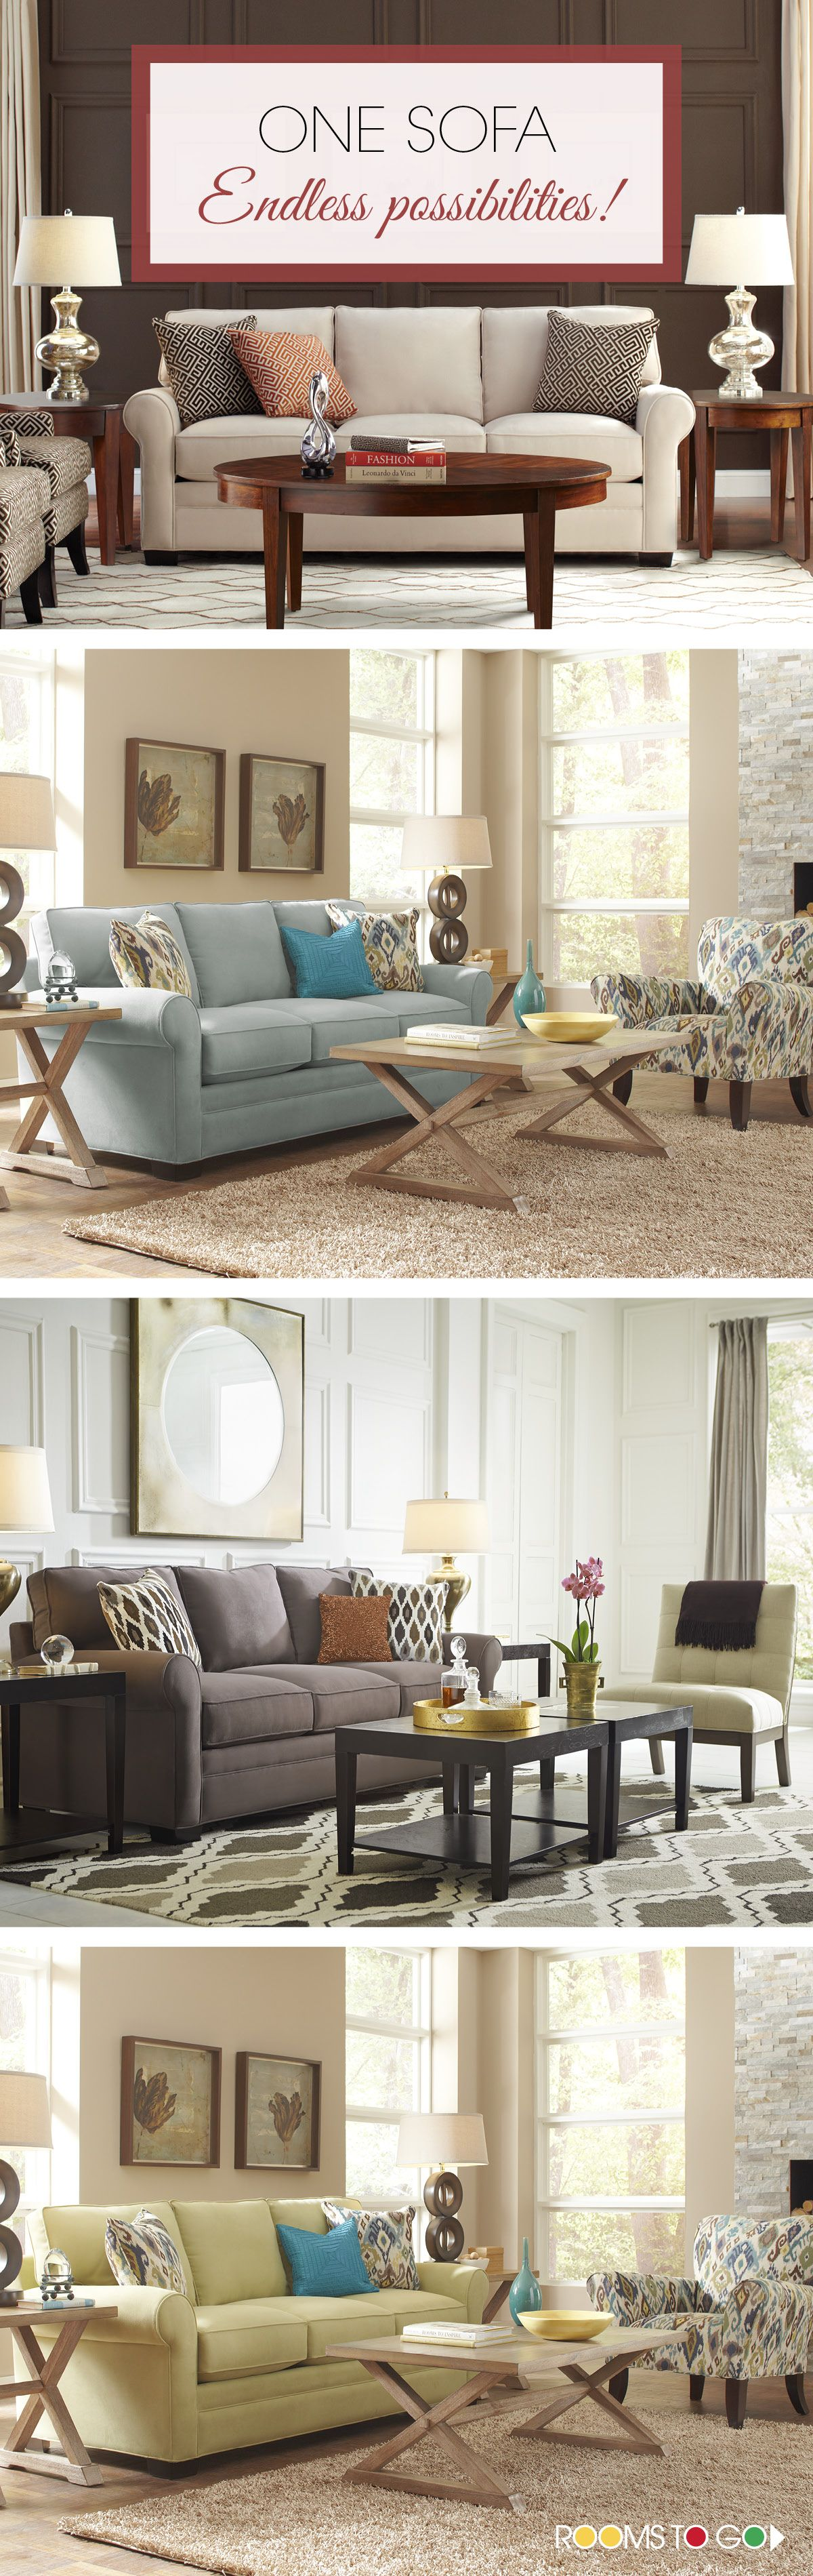 Superbe Update Your Living Room With The Switch Of A Sofa! The Bellingham Living  Room Can